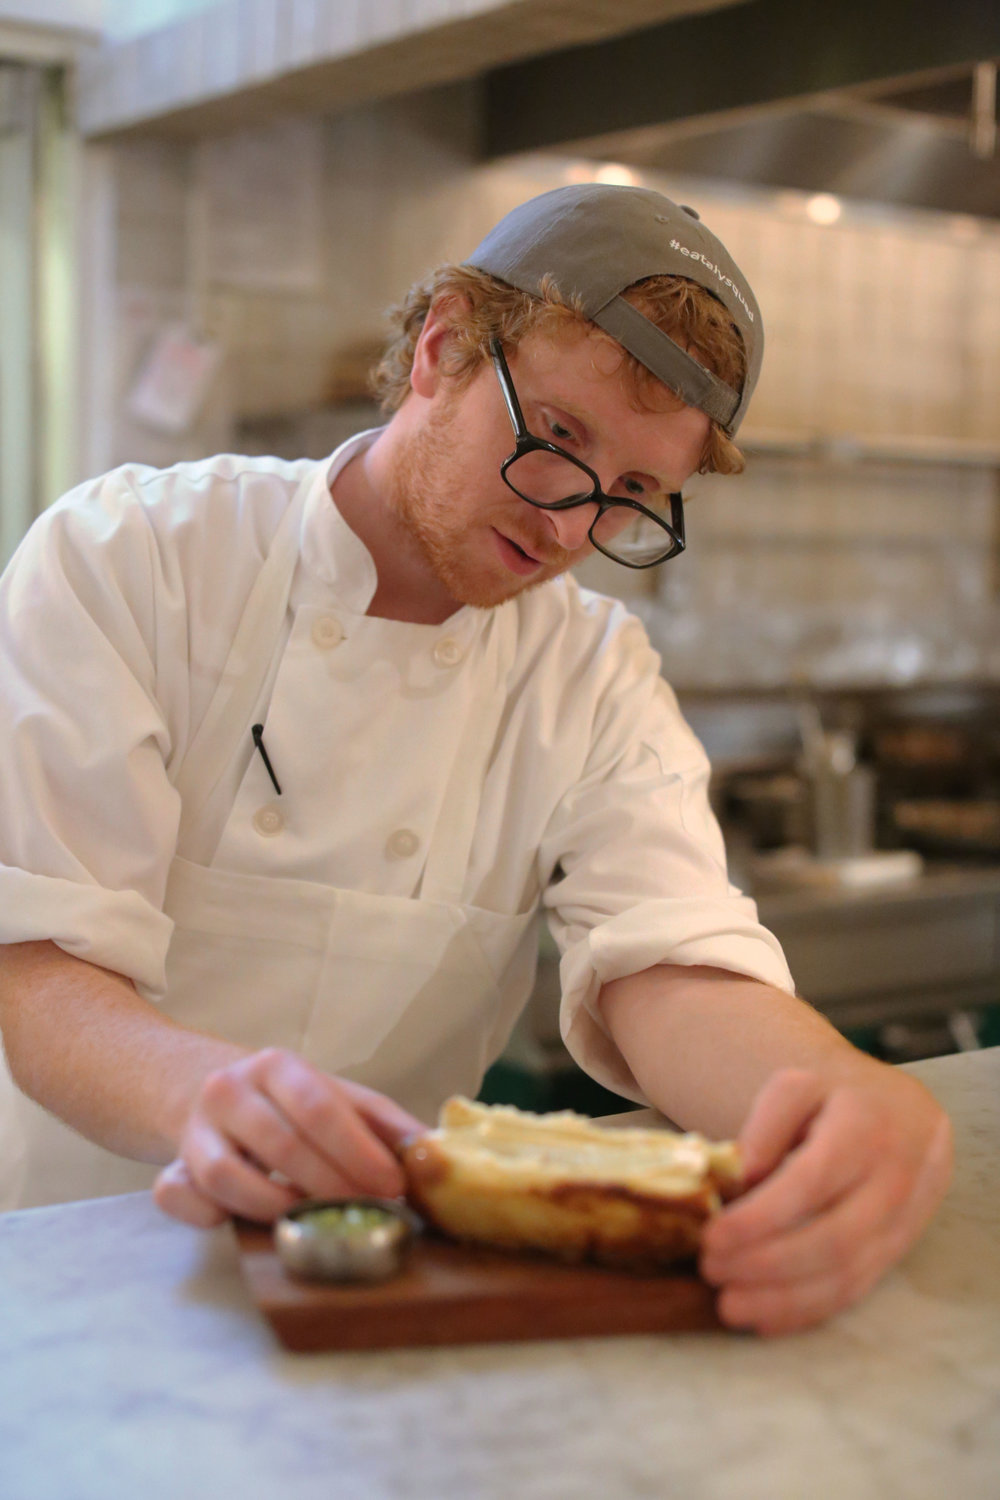 eataly-flatiron-manzo-from-ny-to-ny-chef-adam-hill-plating-hotdog-covina-timandnancycushman.jpg